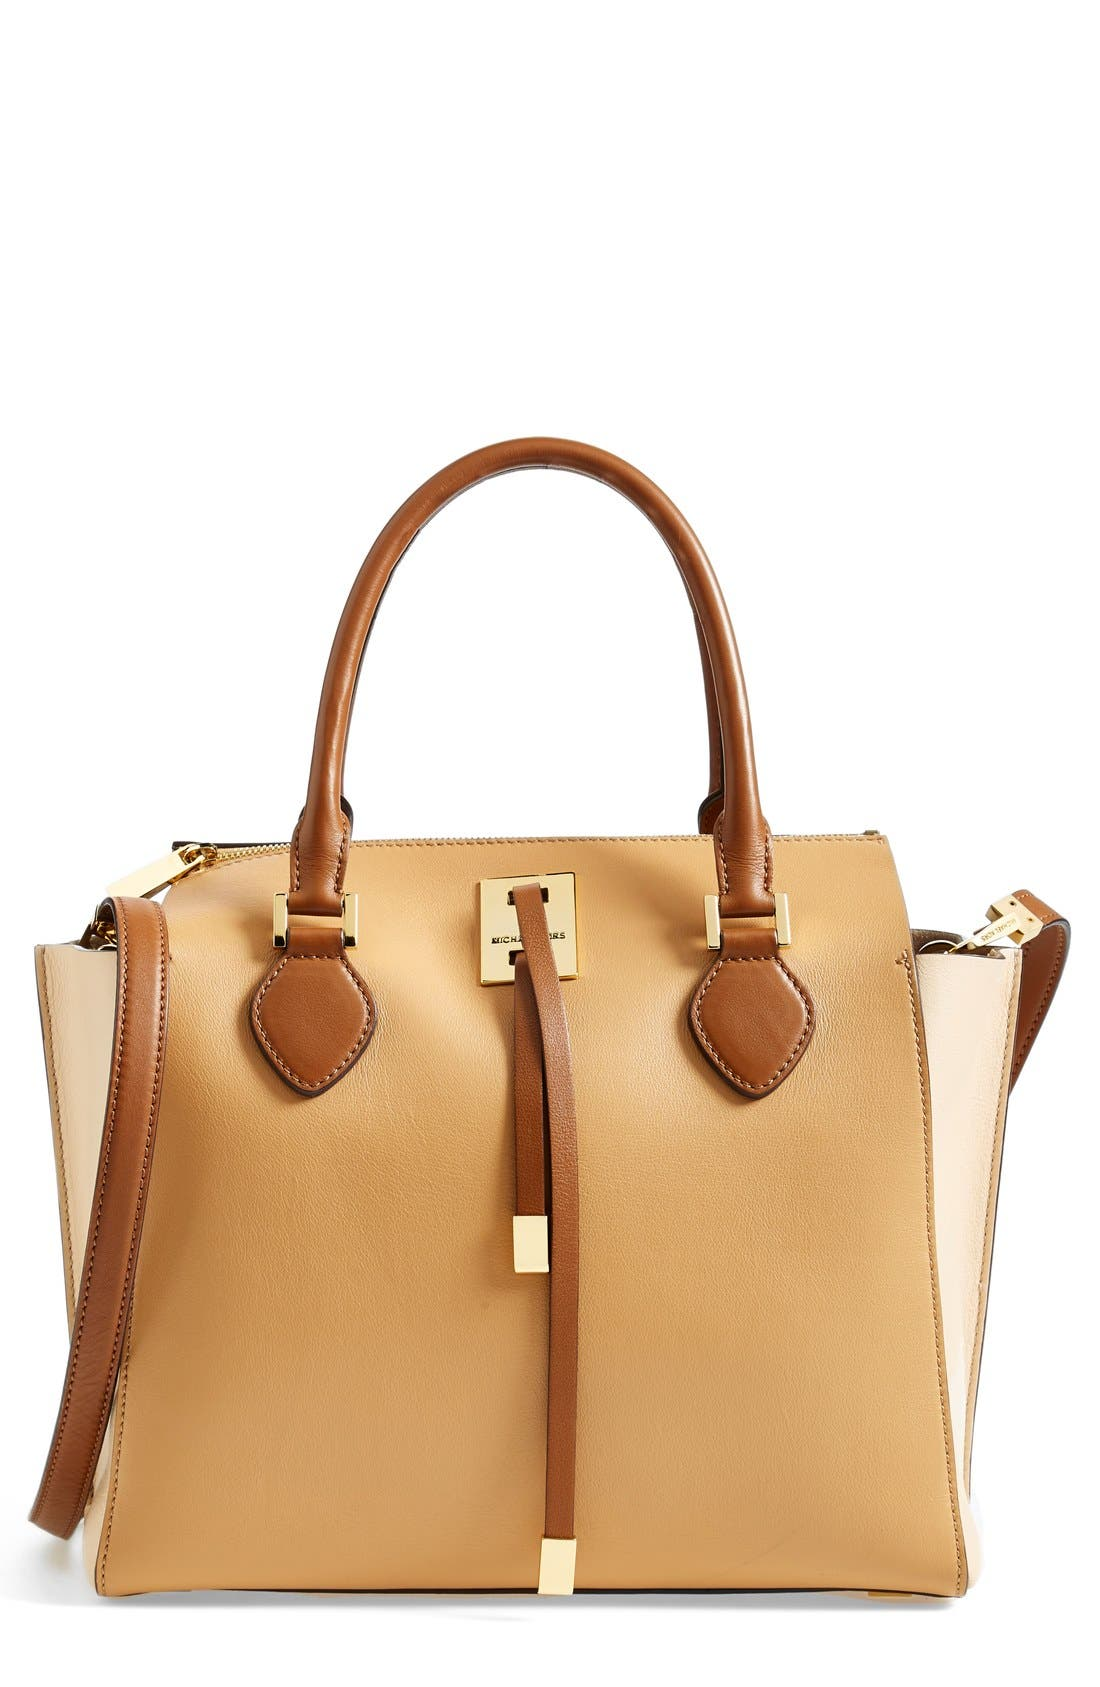 Alternate Image 1 Selected - Michael Kors 'Miranda' Colorblock Leather Satchel